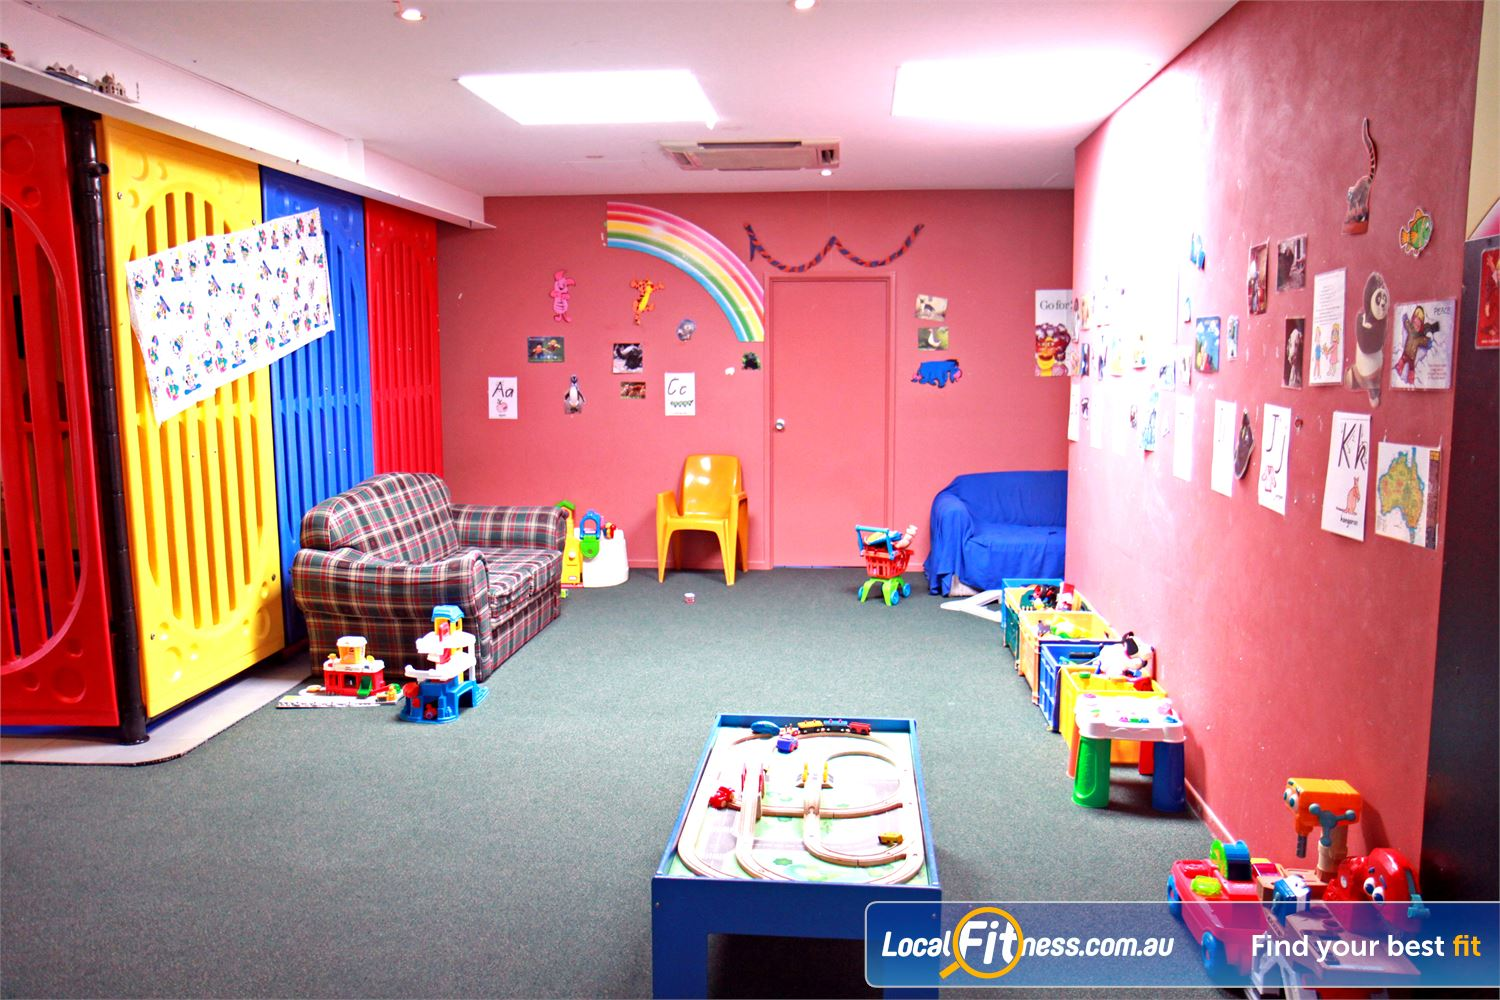 Goodlife Health Clubs Near Lota Our family-friendly environment includes an on-site child minding service.